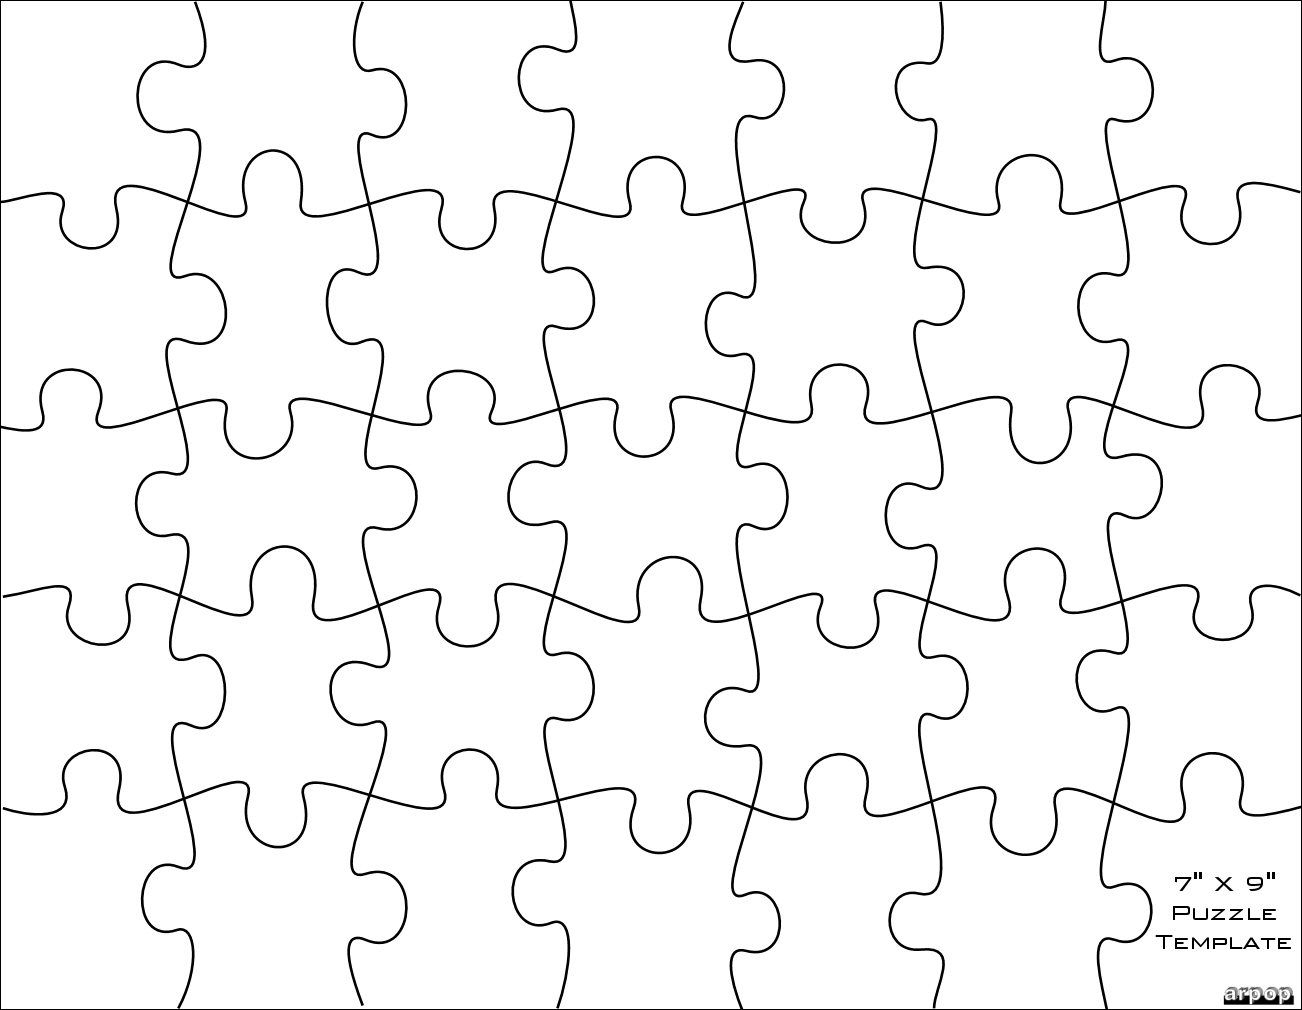 Free Scroll Saw Patternsarpop: Jigsaw Puzzle Templates | School - Printable Jigsaw Puzzles Template